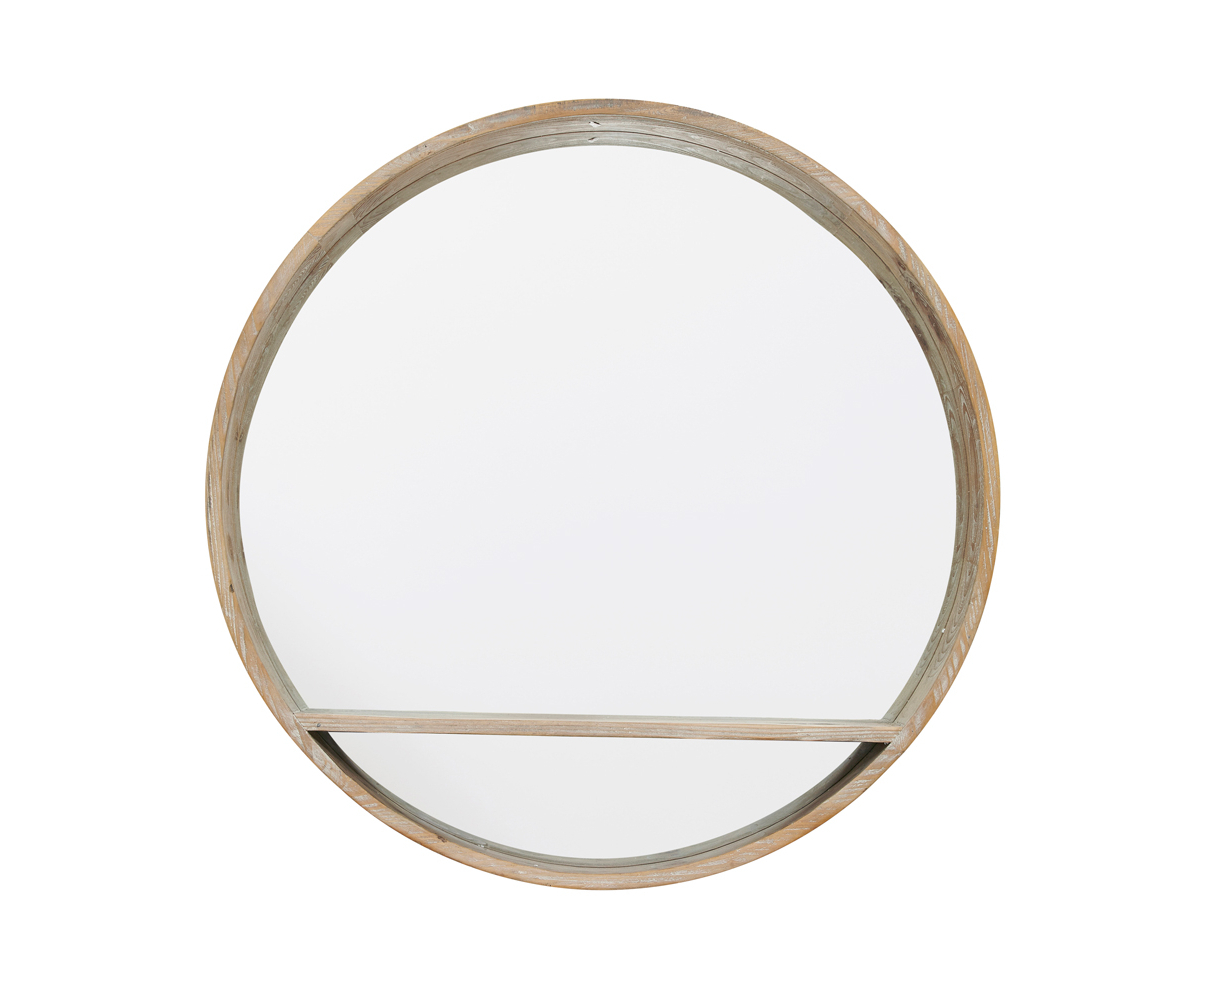 Most Popular Round Wood Wall Mirrors Regarding Hula (View 15 of 20)